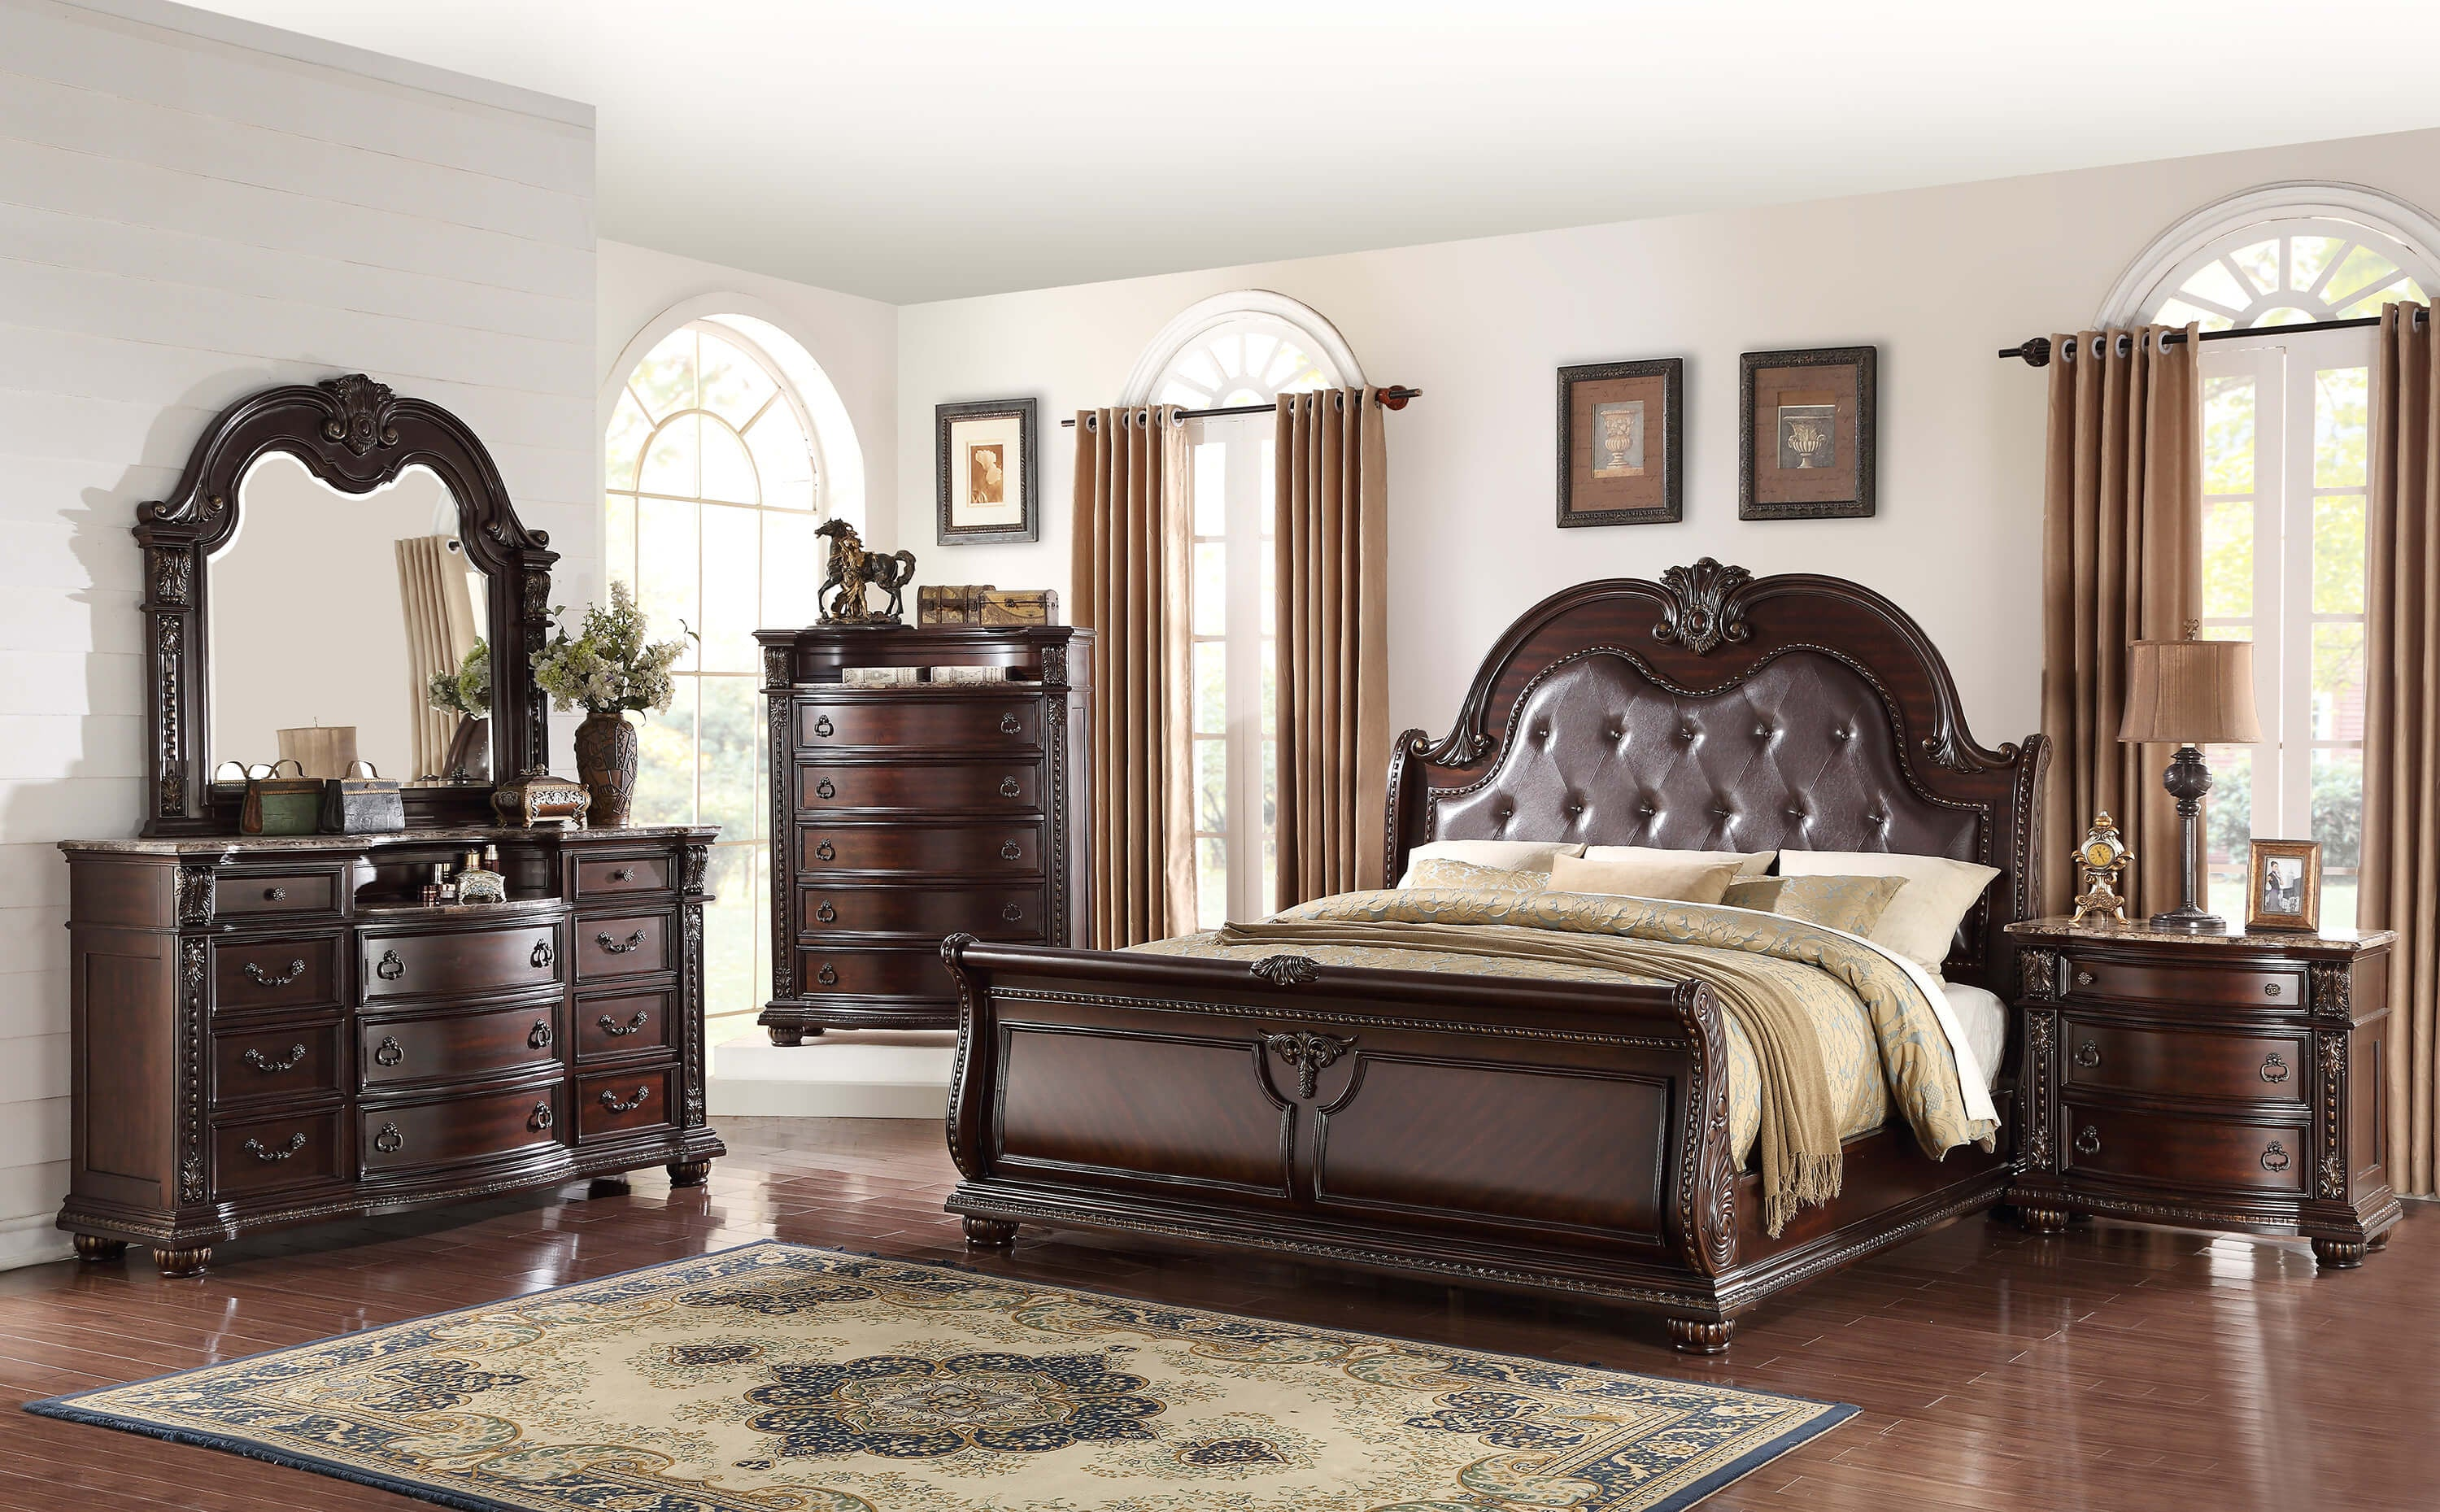 stanley sleigh marble king bedroom set my furniture place 10824 | cmeb1600 1 3ada8a3a 25d1 4f07 b30e ad0f561f936f v 1500675994